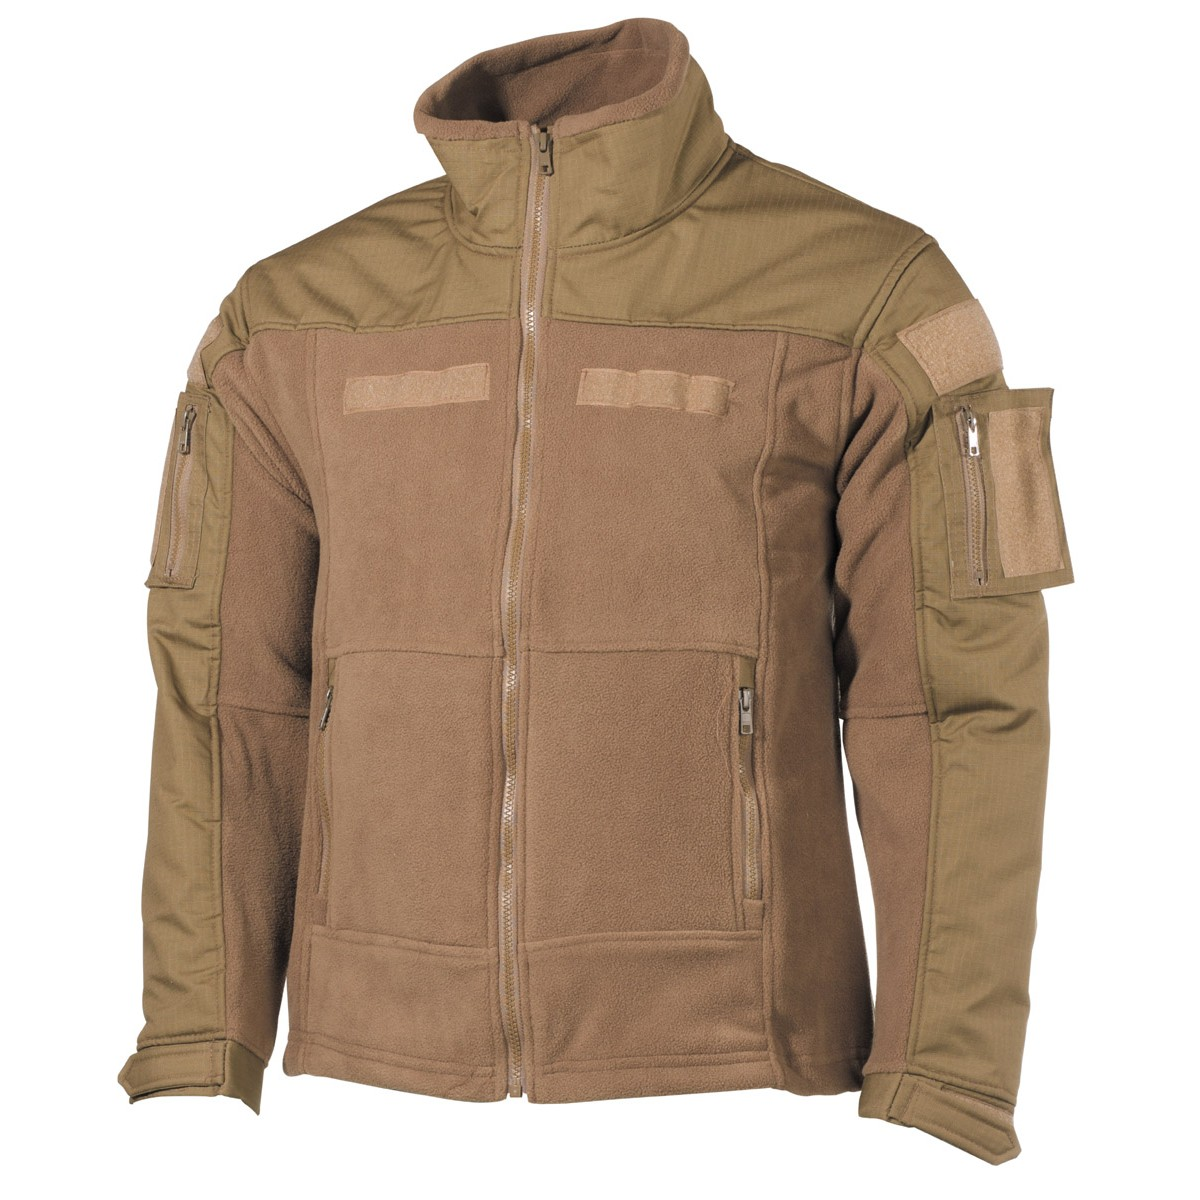 Professional Tactical Military Fleece Jacket COMBAT High Defense - Coyote